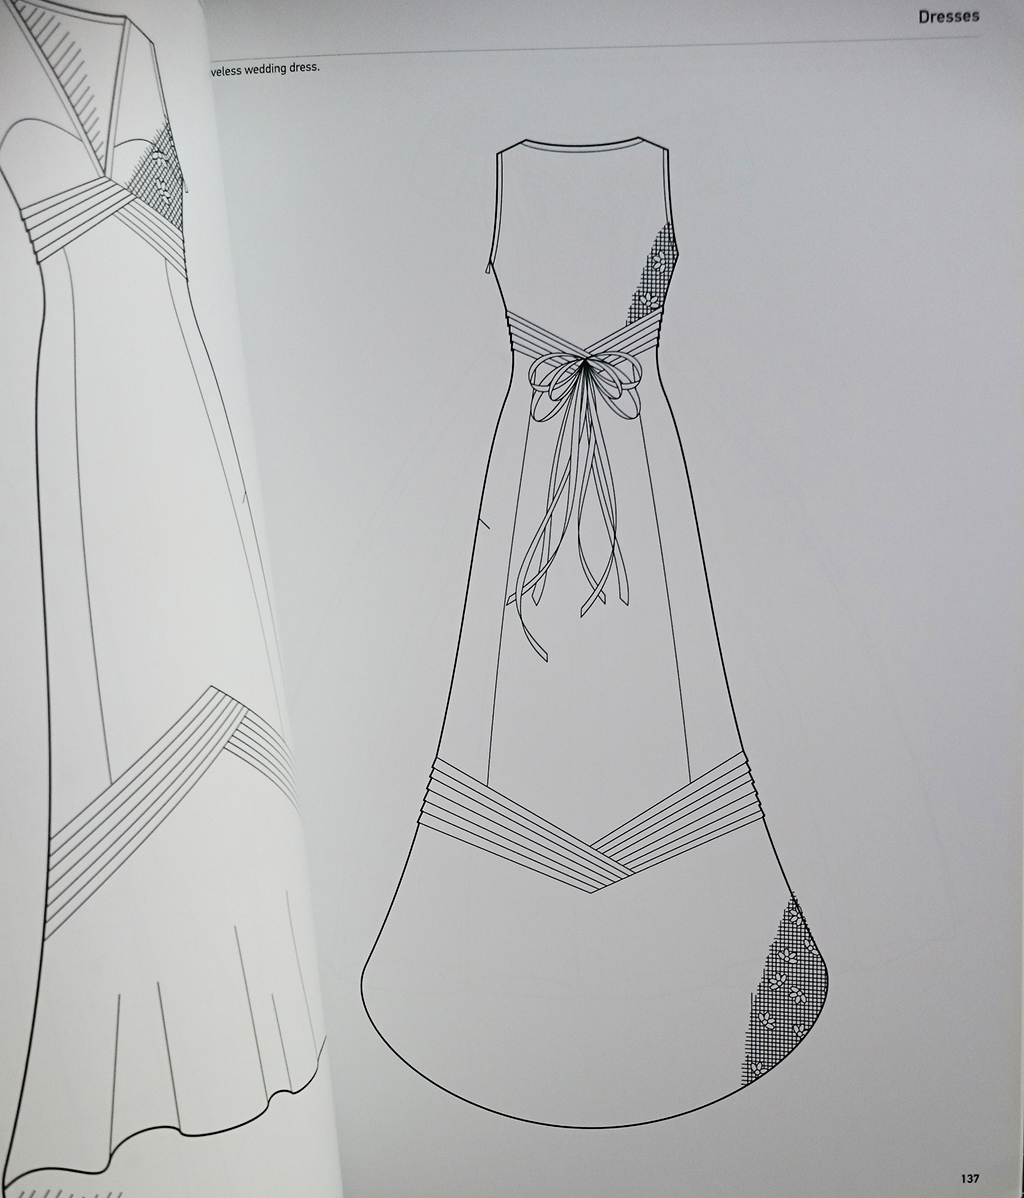 Technical-Drawing-Look-Inside-02